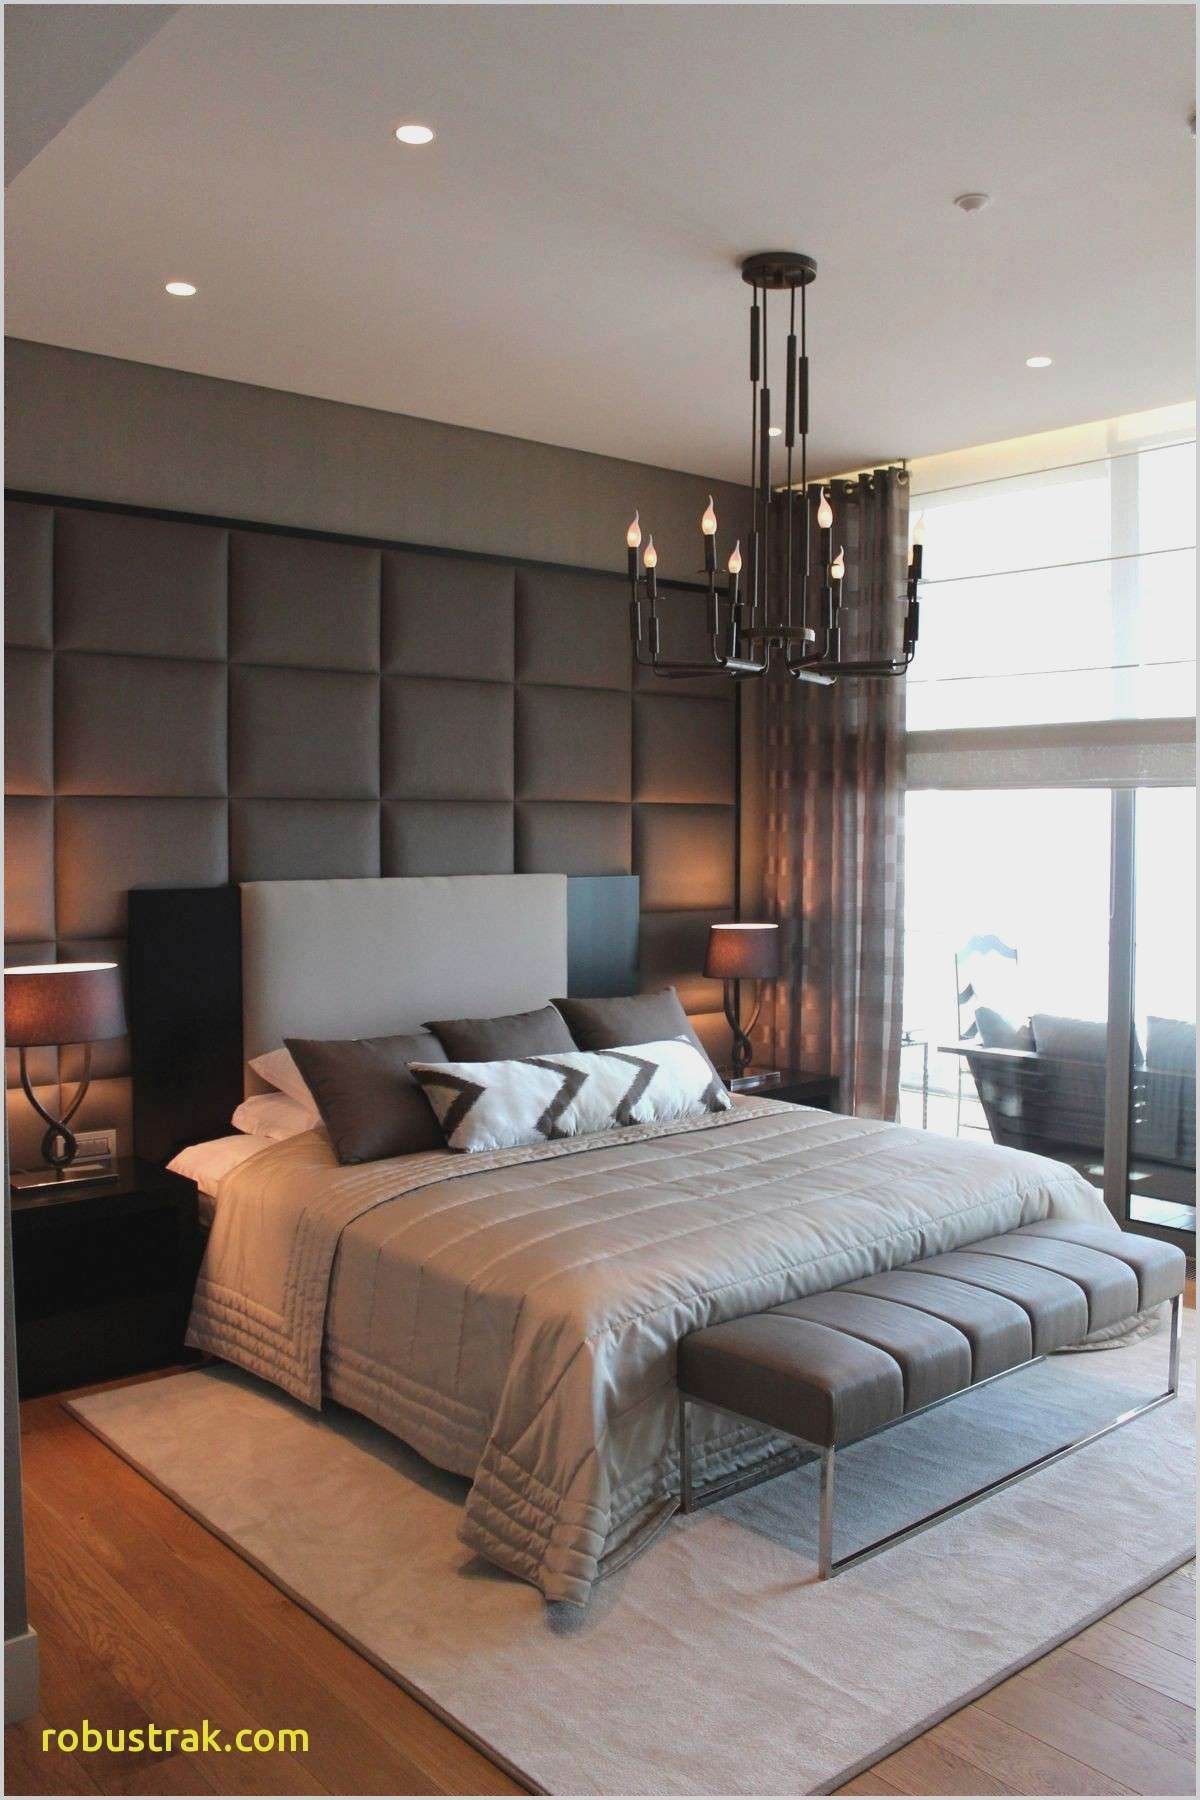 57 New Trend And Modern Bedroom Design Ideas For 2020 Part 32 Luxurious Bedrooms Modern Master Bedroom Design Modern Master Bedroom